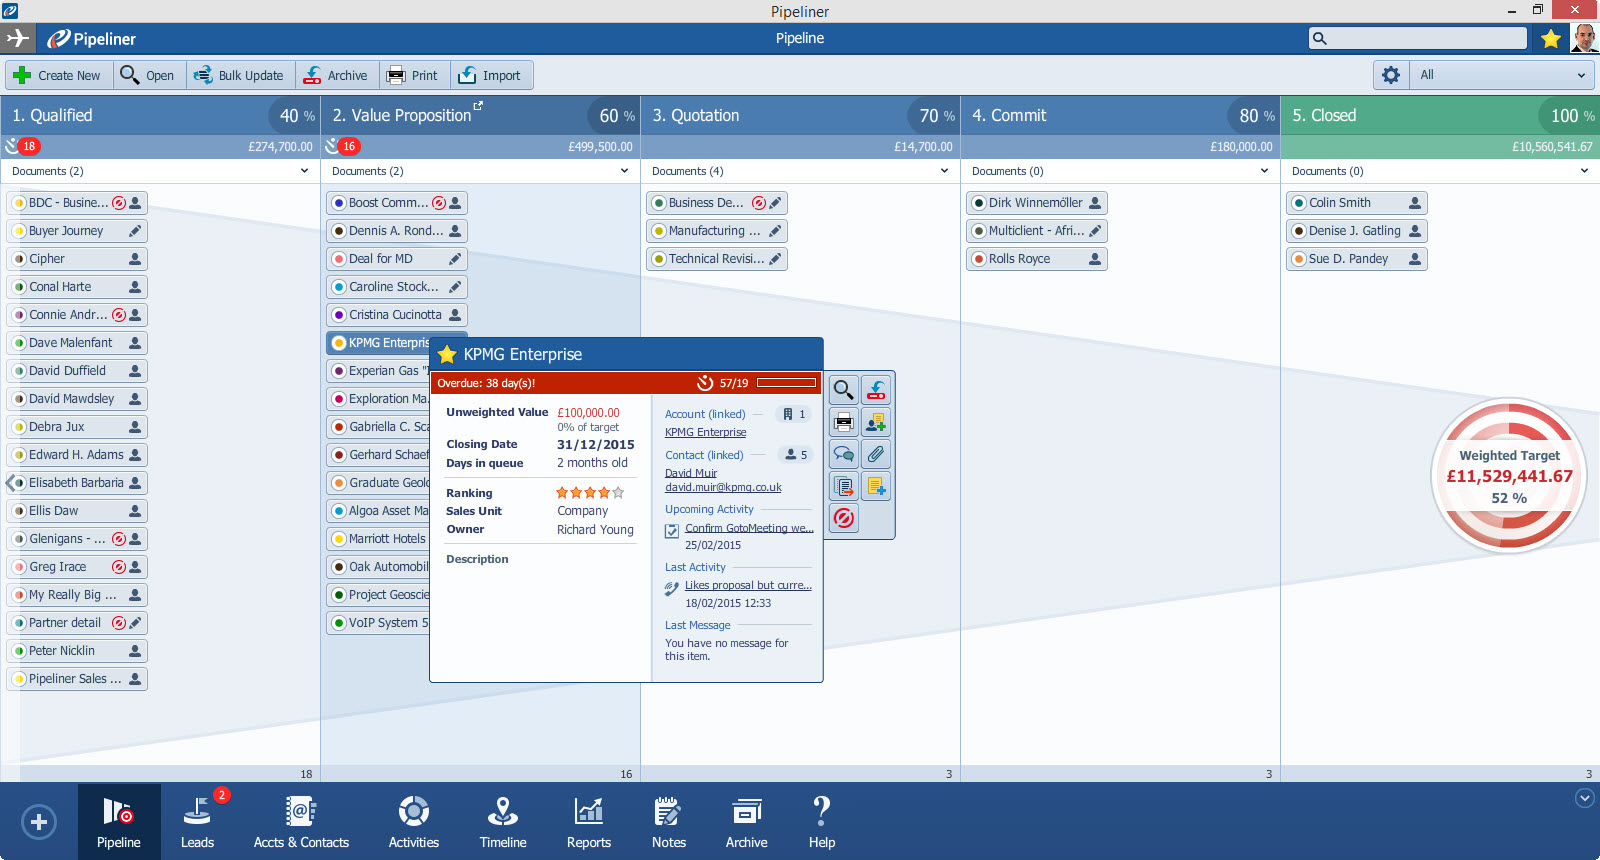 Pipeliner Crm Visual Crm Tool To Engage Your Sales Team